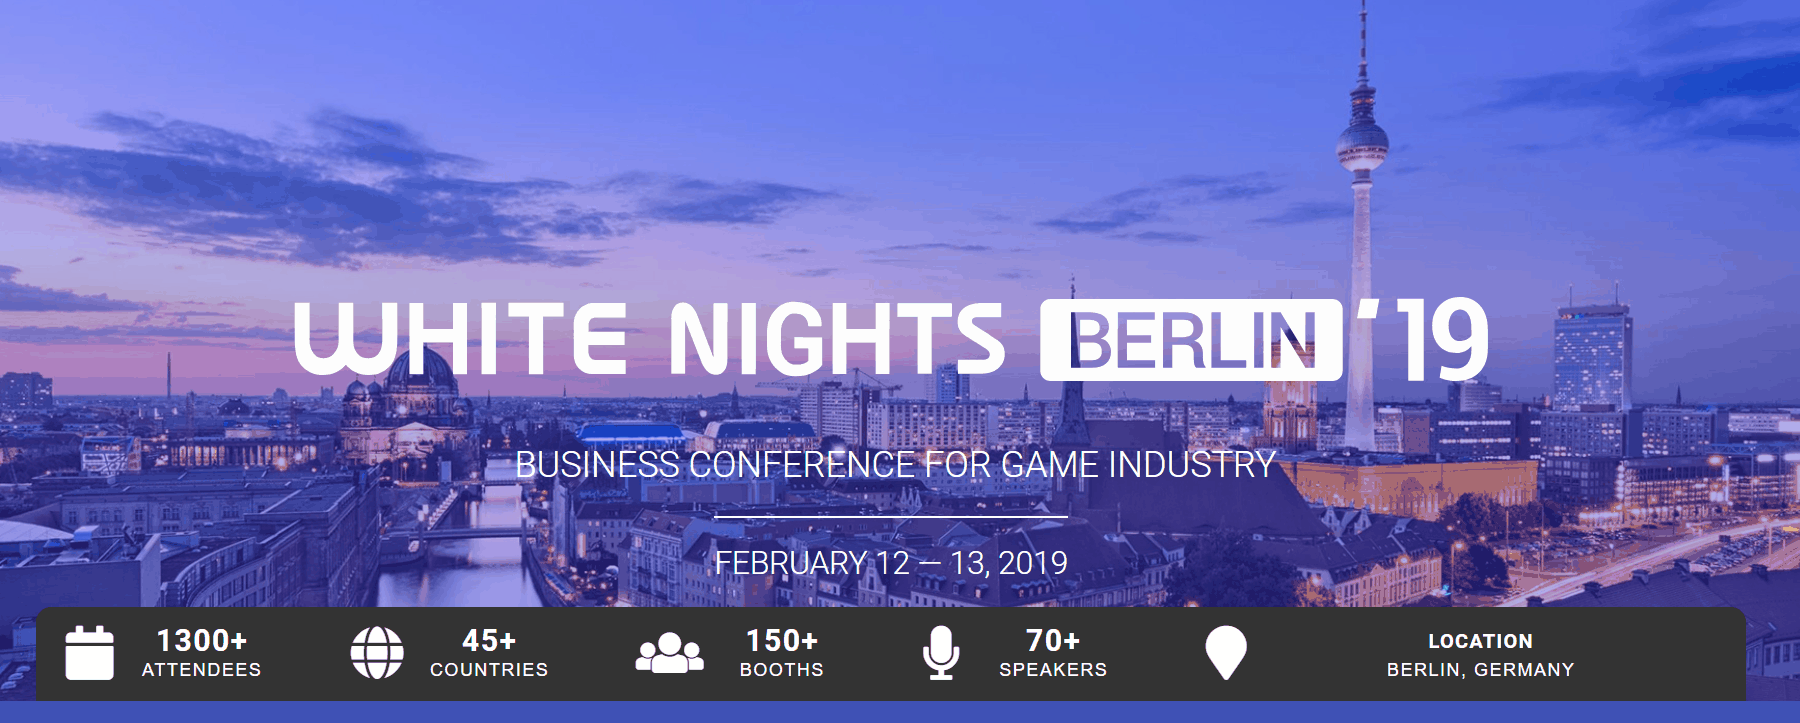 White Nights Conference in Berlin - Gaming Industry